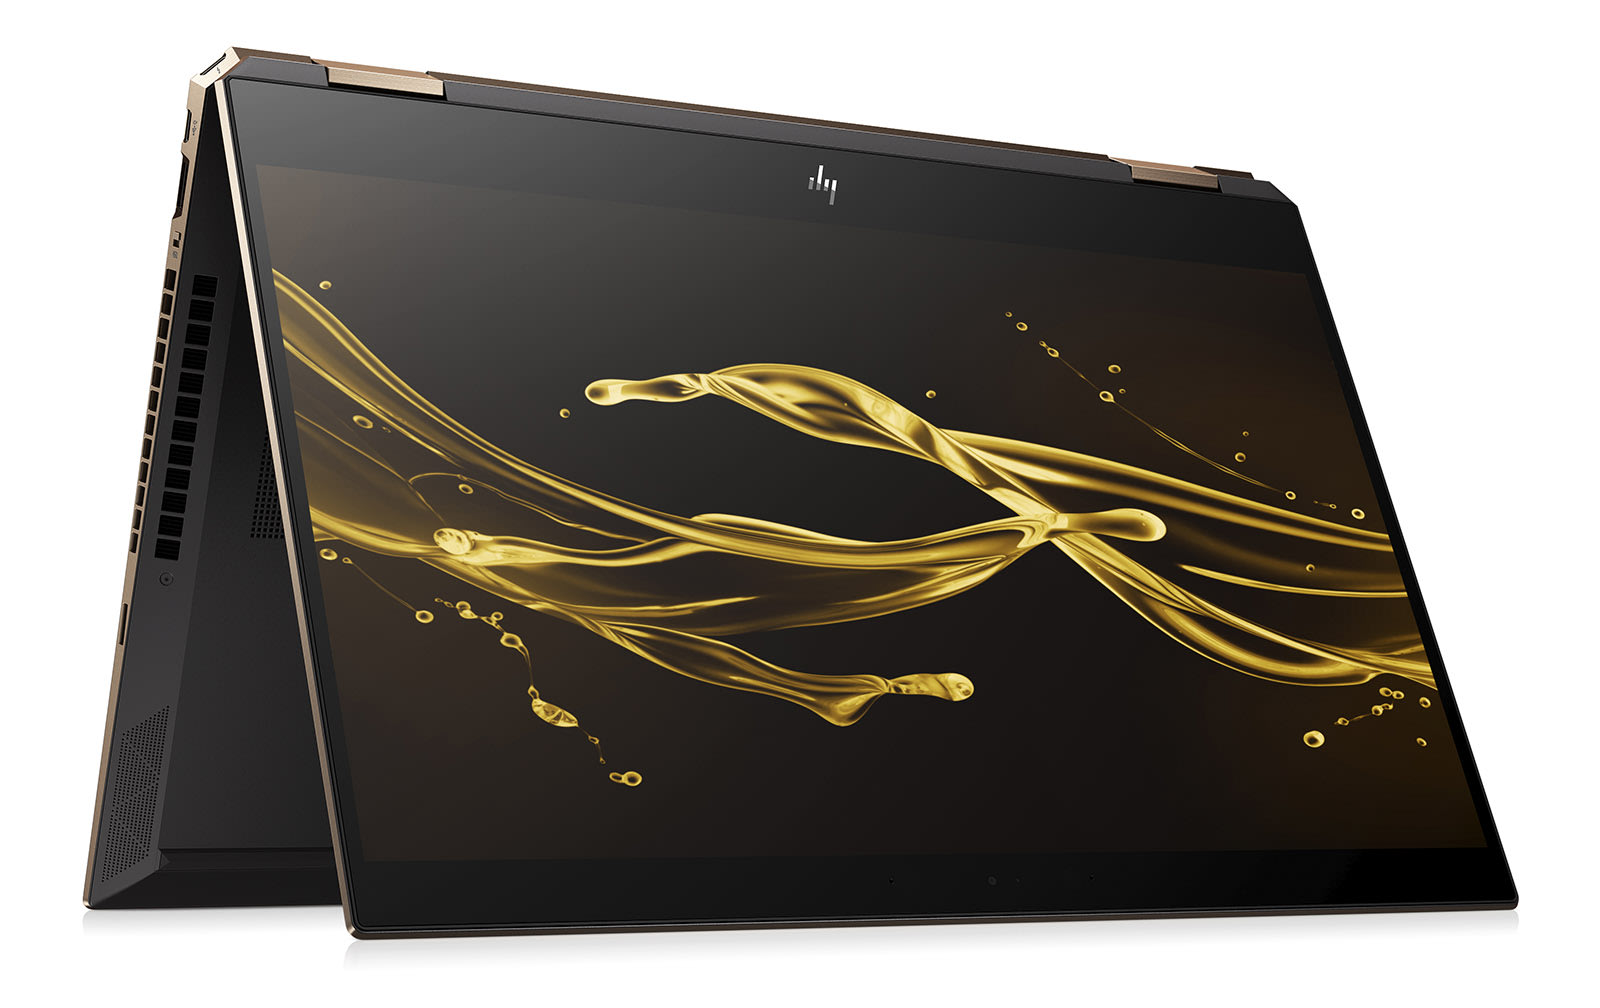 HP Spectre 15 x360 with AMOLED display